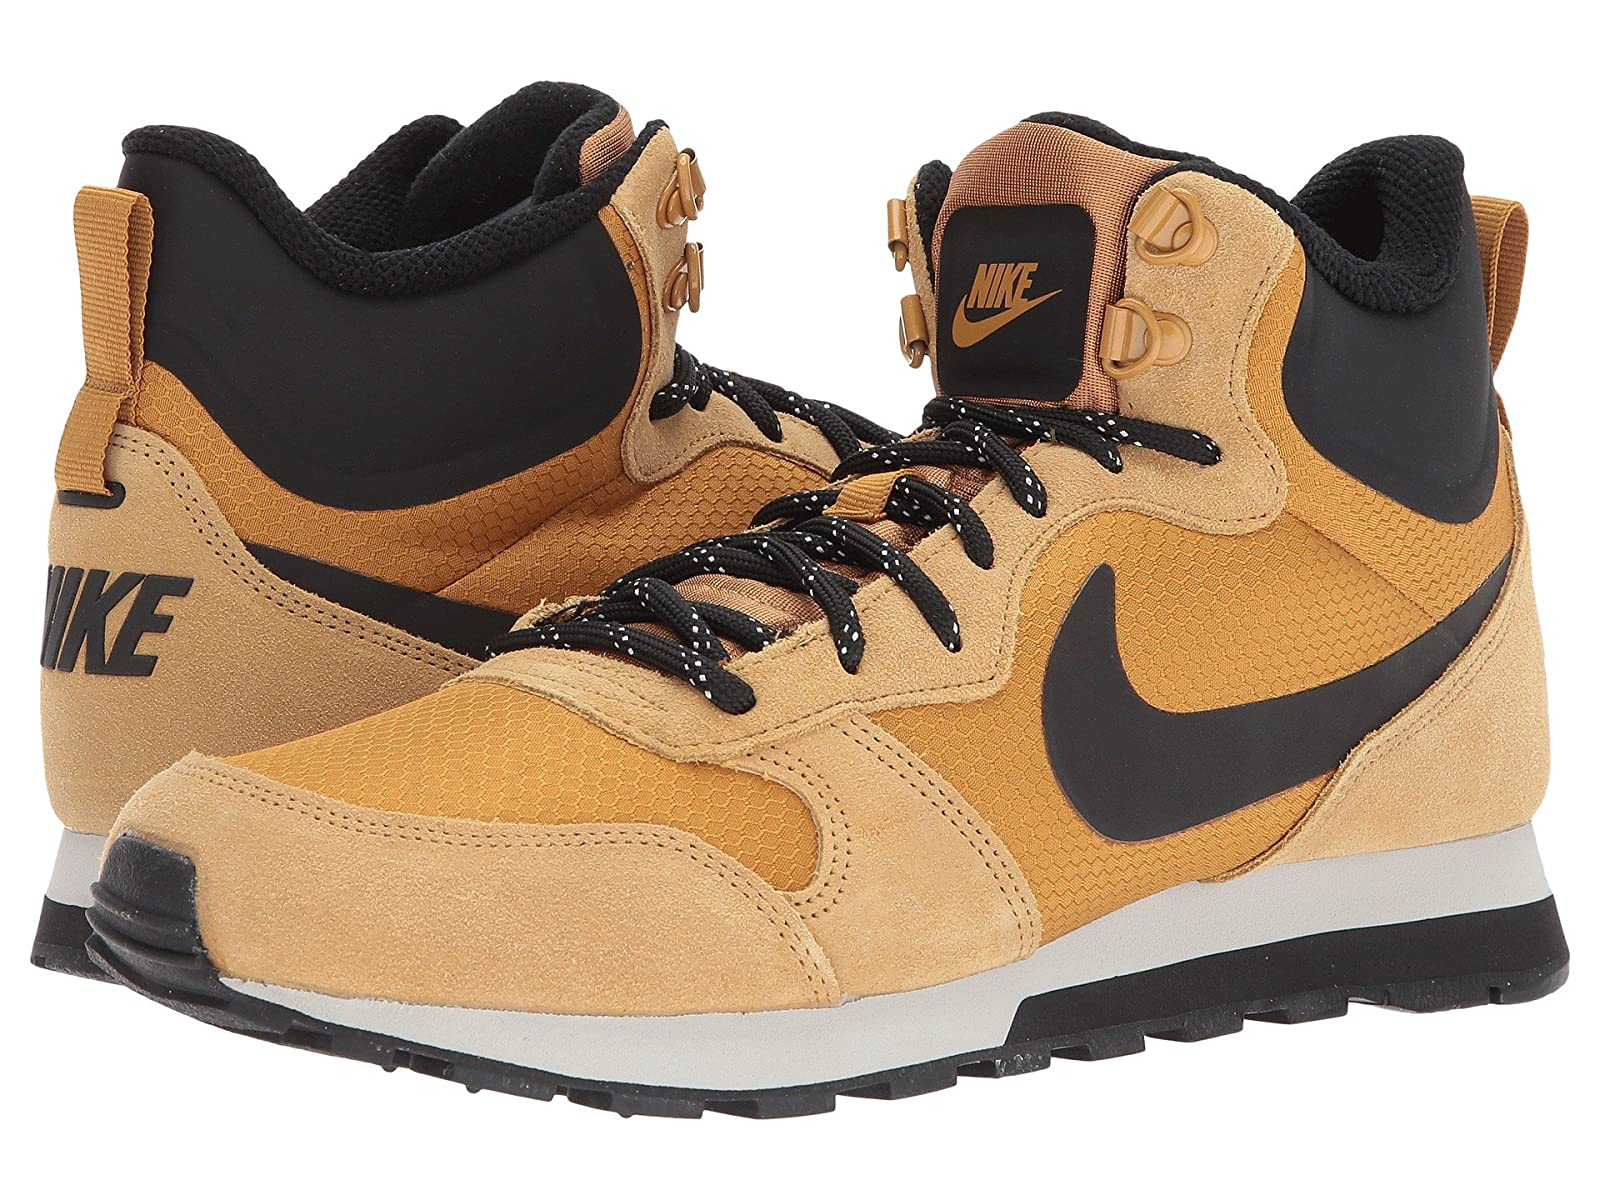 Nike MD Runner 2 Mid PremiumCheap and distinctive eye-catching shoes